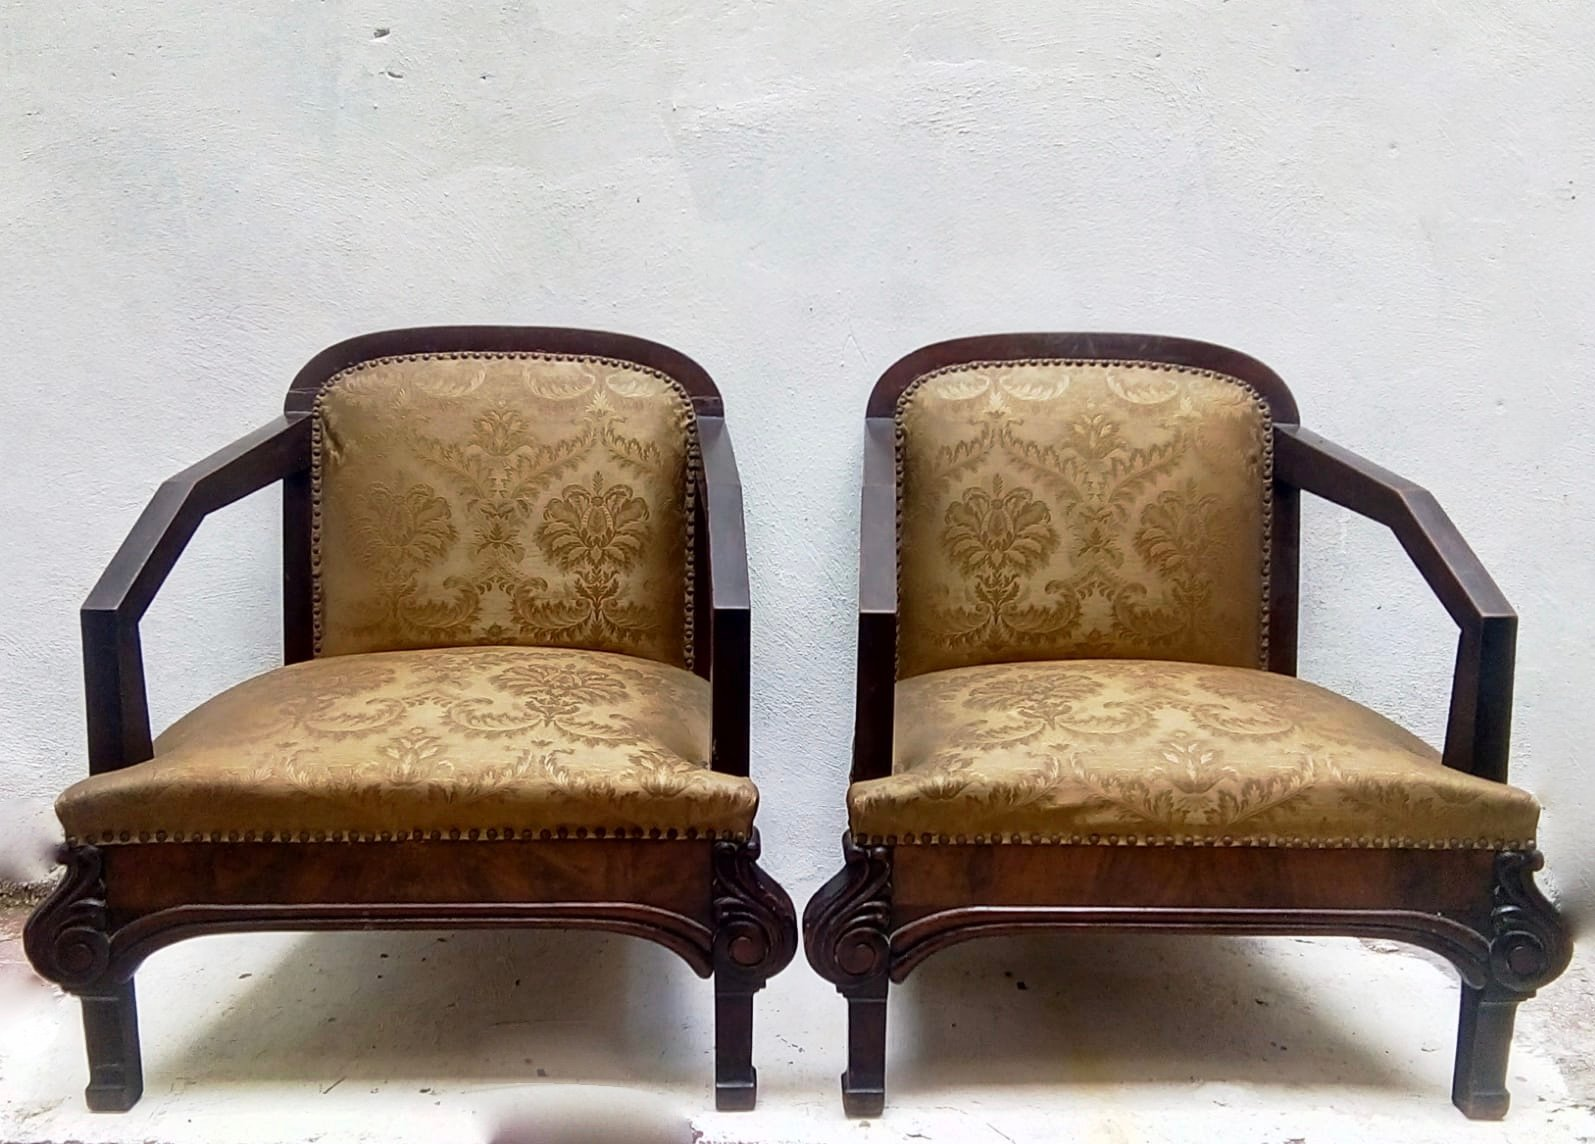 fauteuil art deco 1930s set de 2 en vente sur pamono. Black Bedroom Furniture Sets. Home Design Ideas